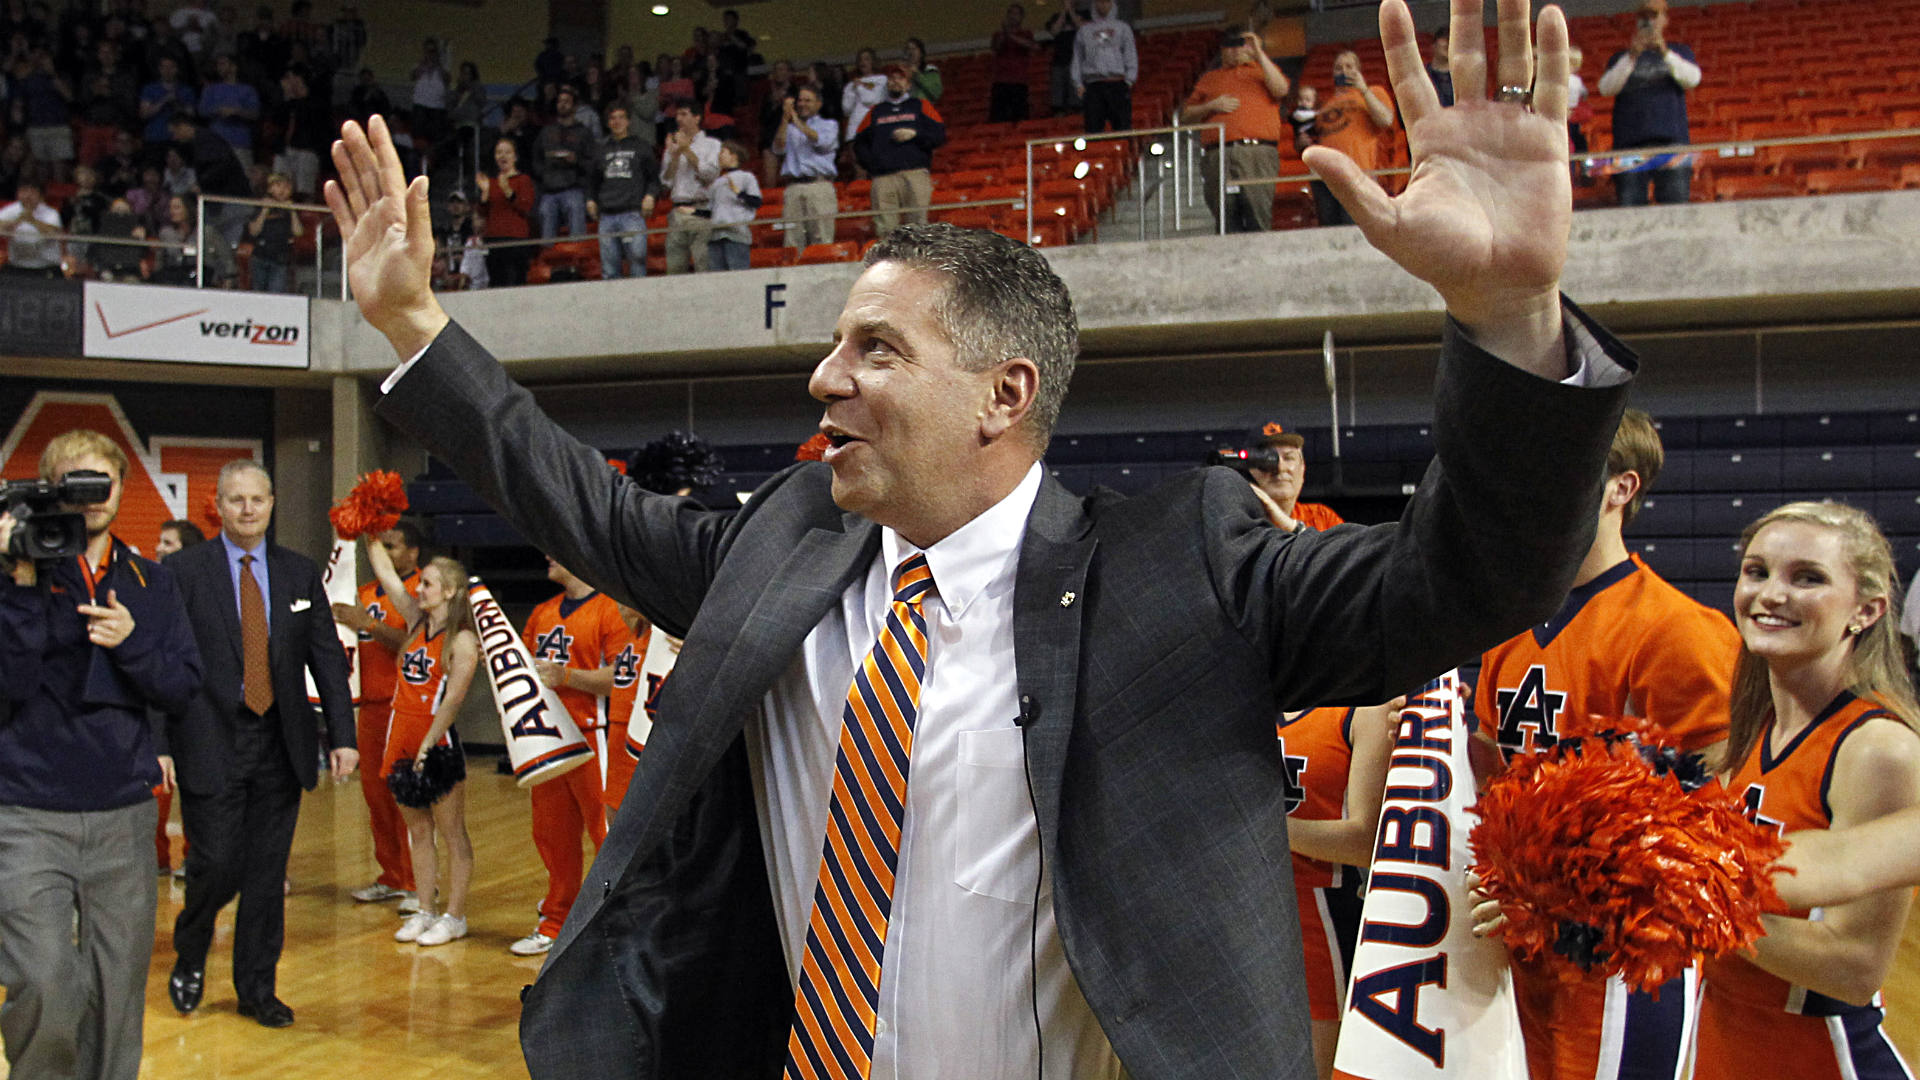 Bruce Pearl says he 'ran a clean program' at Tennessee